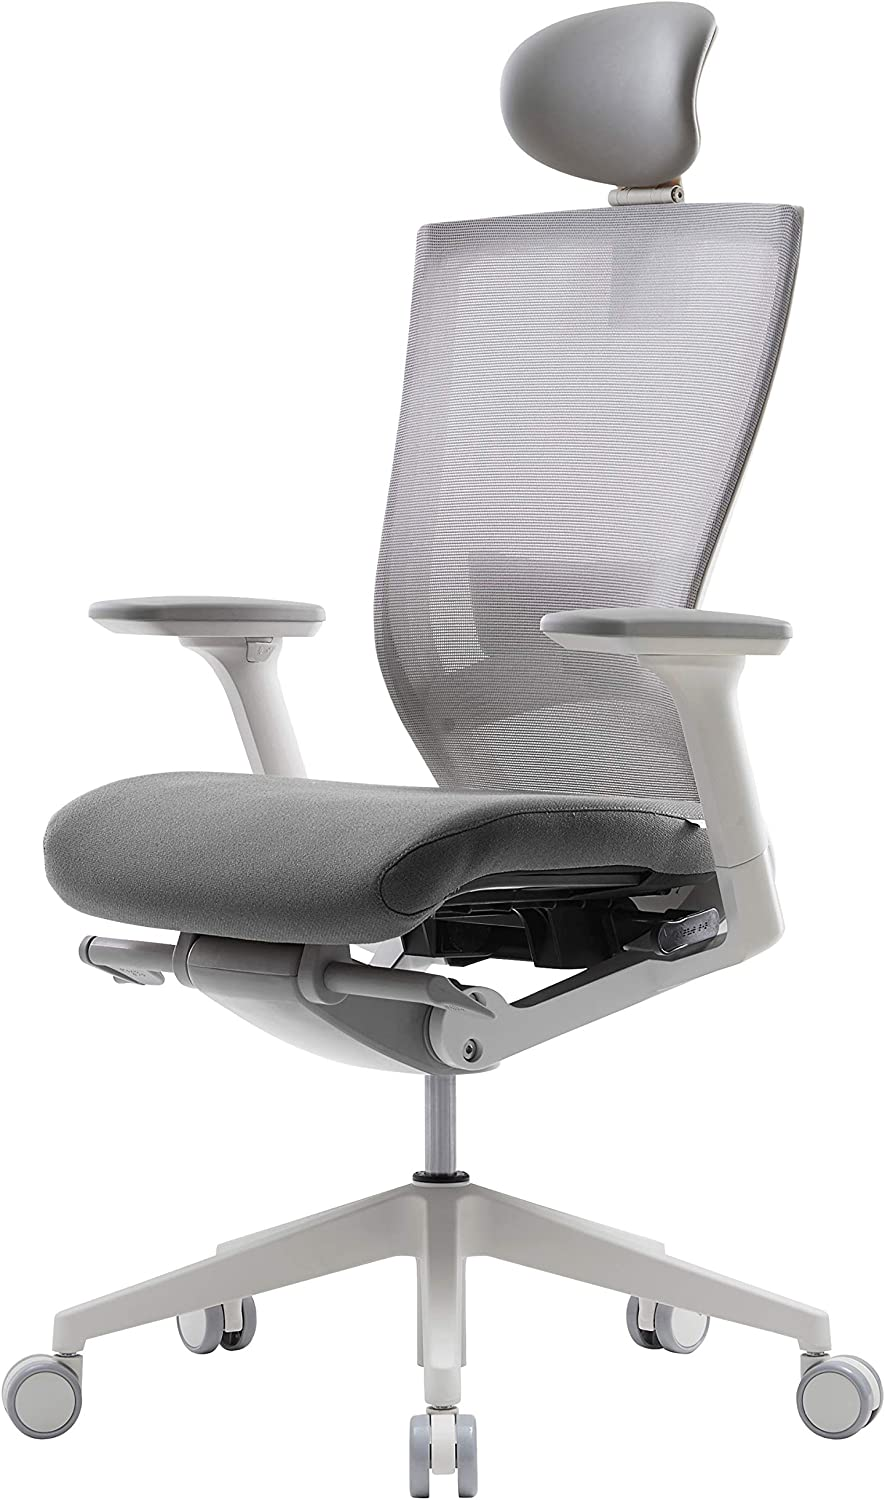 81NDRdMGILL. AC SL1500 - What Is The Best Office Chair For Short Person With Back Pain - ChairPicks